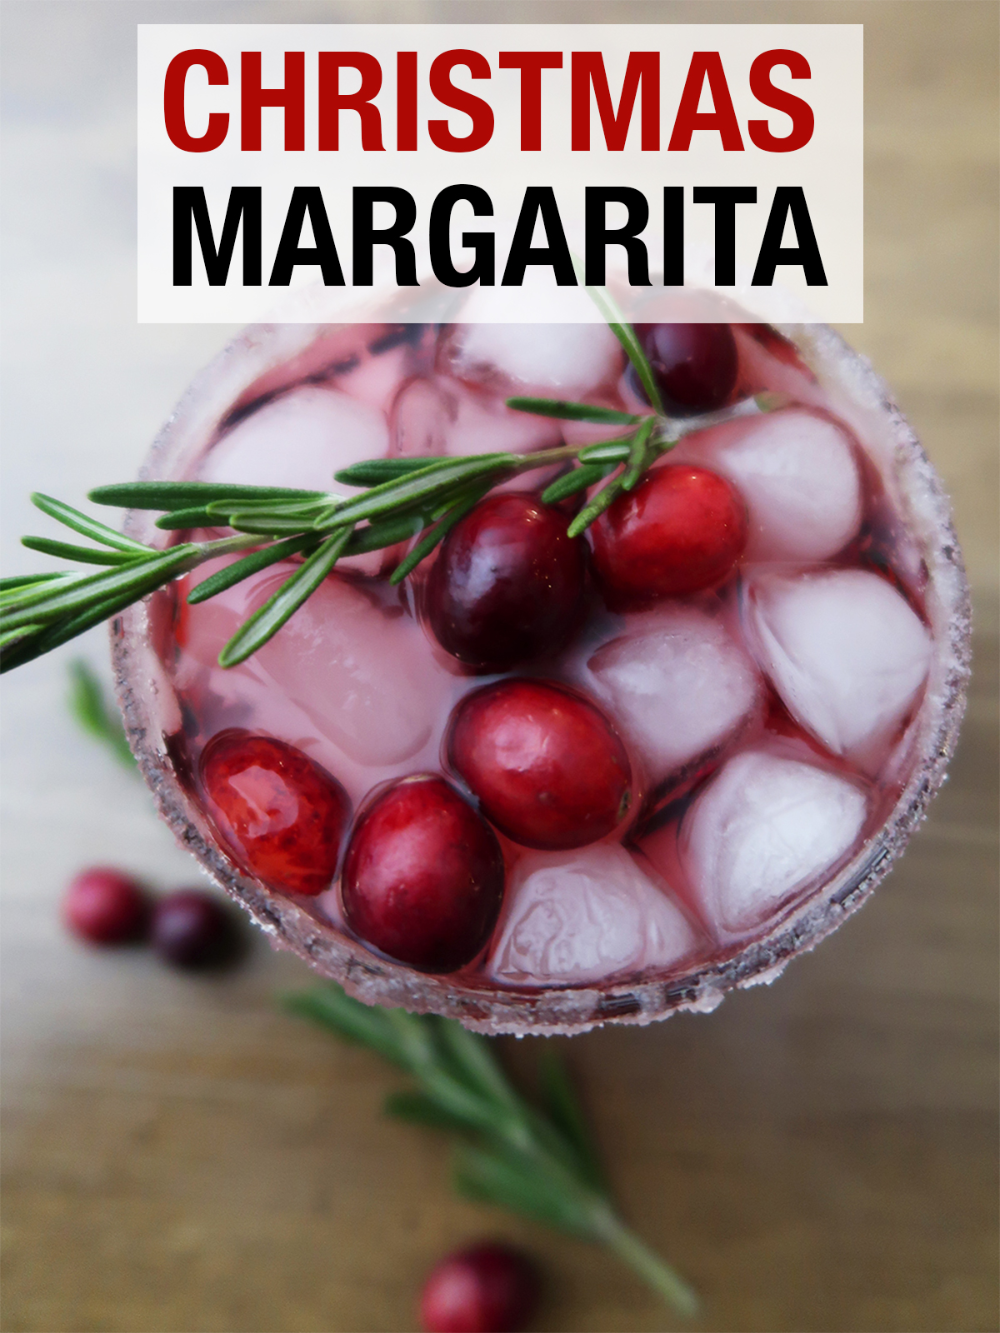 Christmas Margarita #christmasmargarita A festive twist on the classic margarita with cranberry and pomegranate. A recipe for a Christmas Margarita. Perfect to make a glass or a whole pitcher for a Christmas Party. #ChristmasCocktail #cocktails #ChristmasSpirit #ChristmasParty #christmasmargarita Christmas Margarita #christmasmargarita A festive twist on the classic margarita with cranberry and pomegranate. A recipe for a Christmas Margarita. Perfect to make a glass or a whole pitcher for a Chri